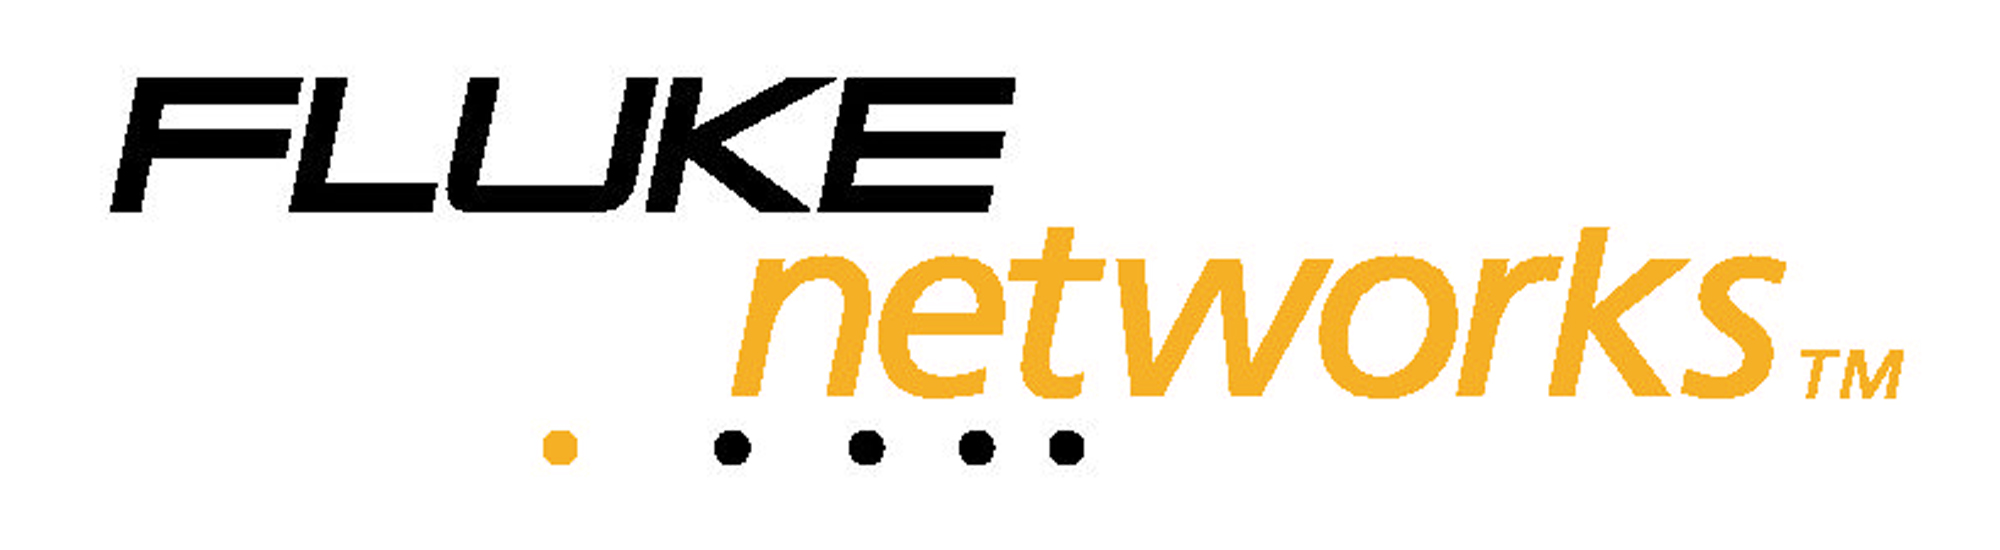 Fluke_Networks_Logo_Fibre_Optic_Cable_Testing_Page